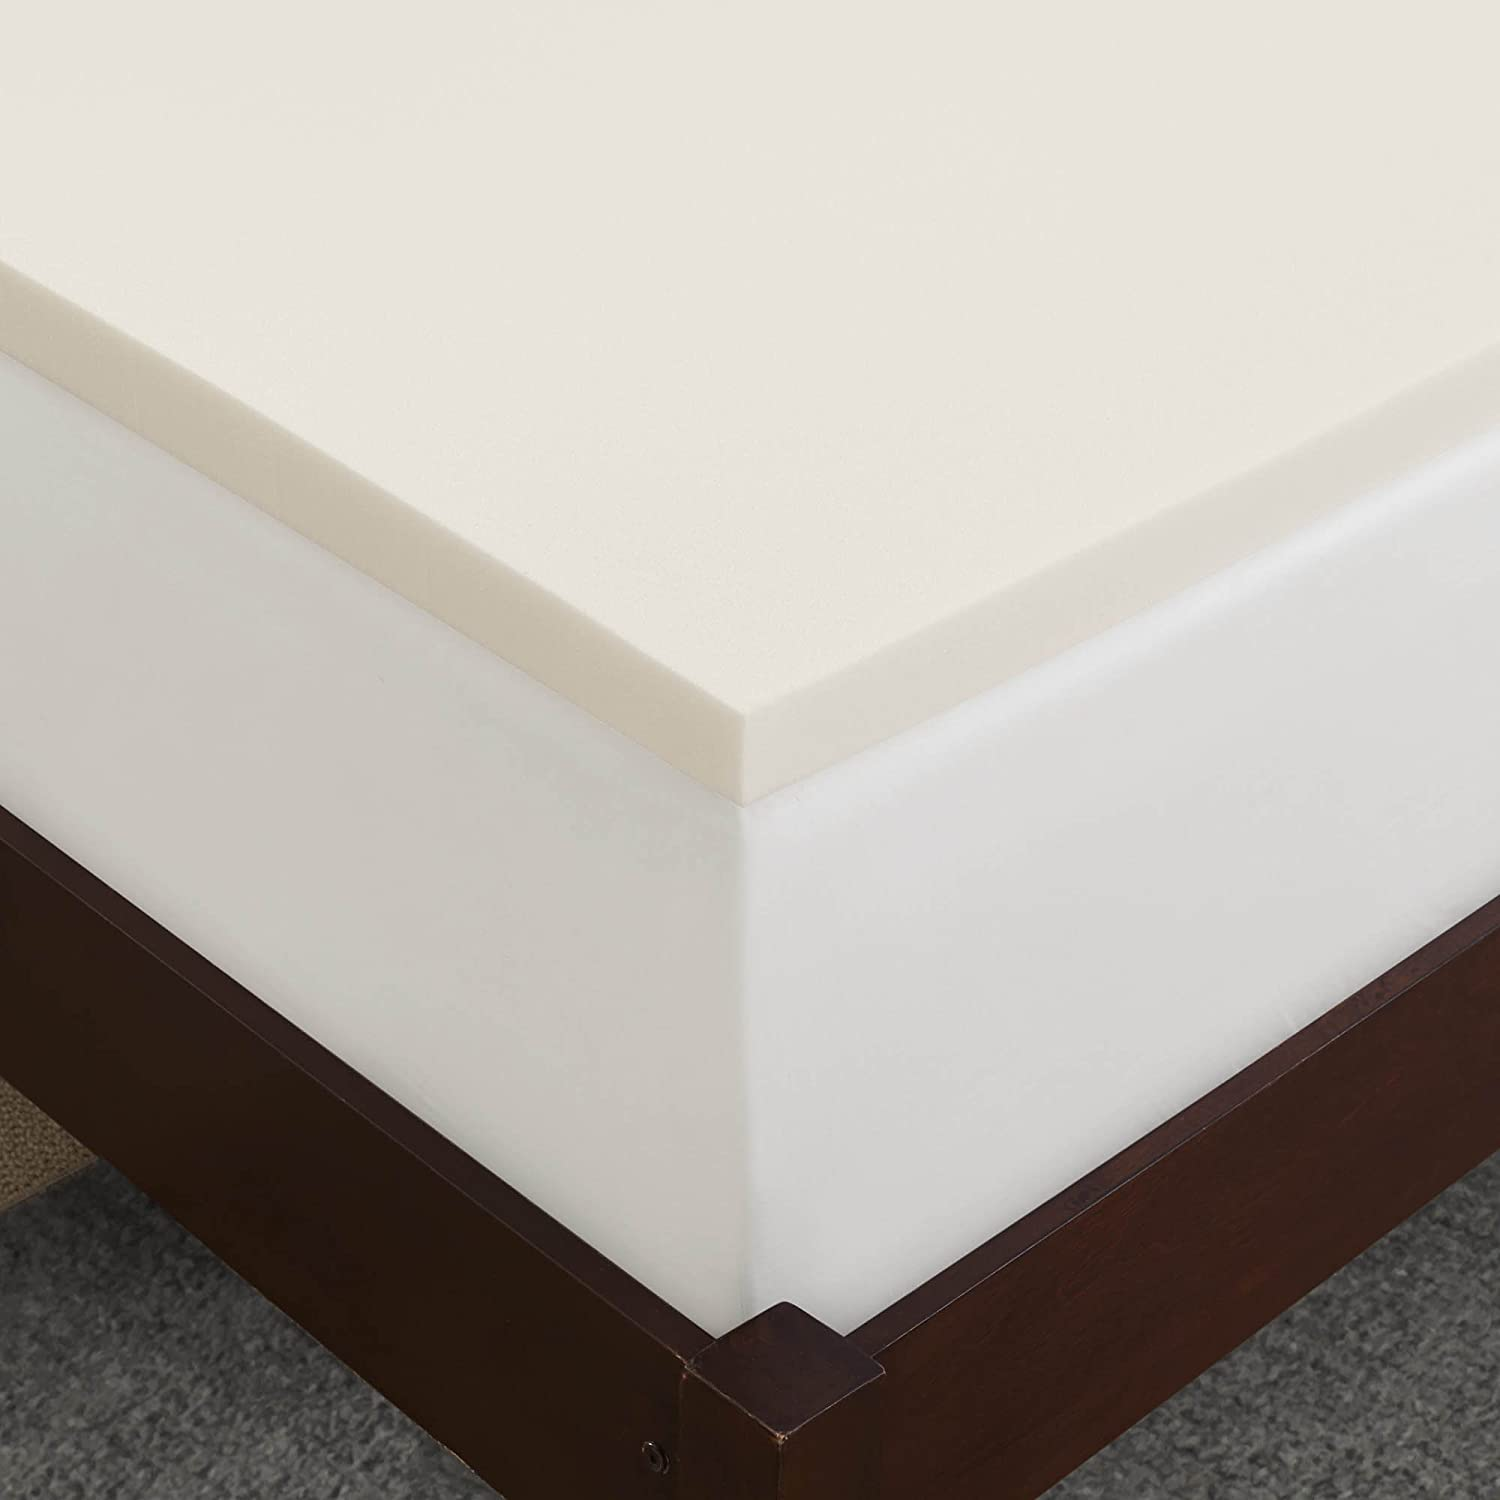 amazoncom sleep innovations 2inch suretemp memory foam topper with fitted cover 10year limited warranty home u0026 kitchen